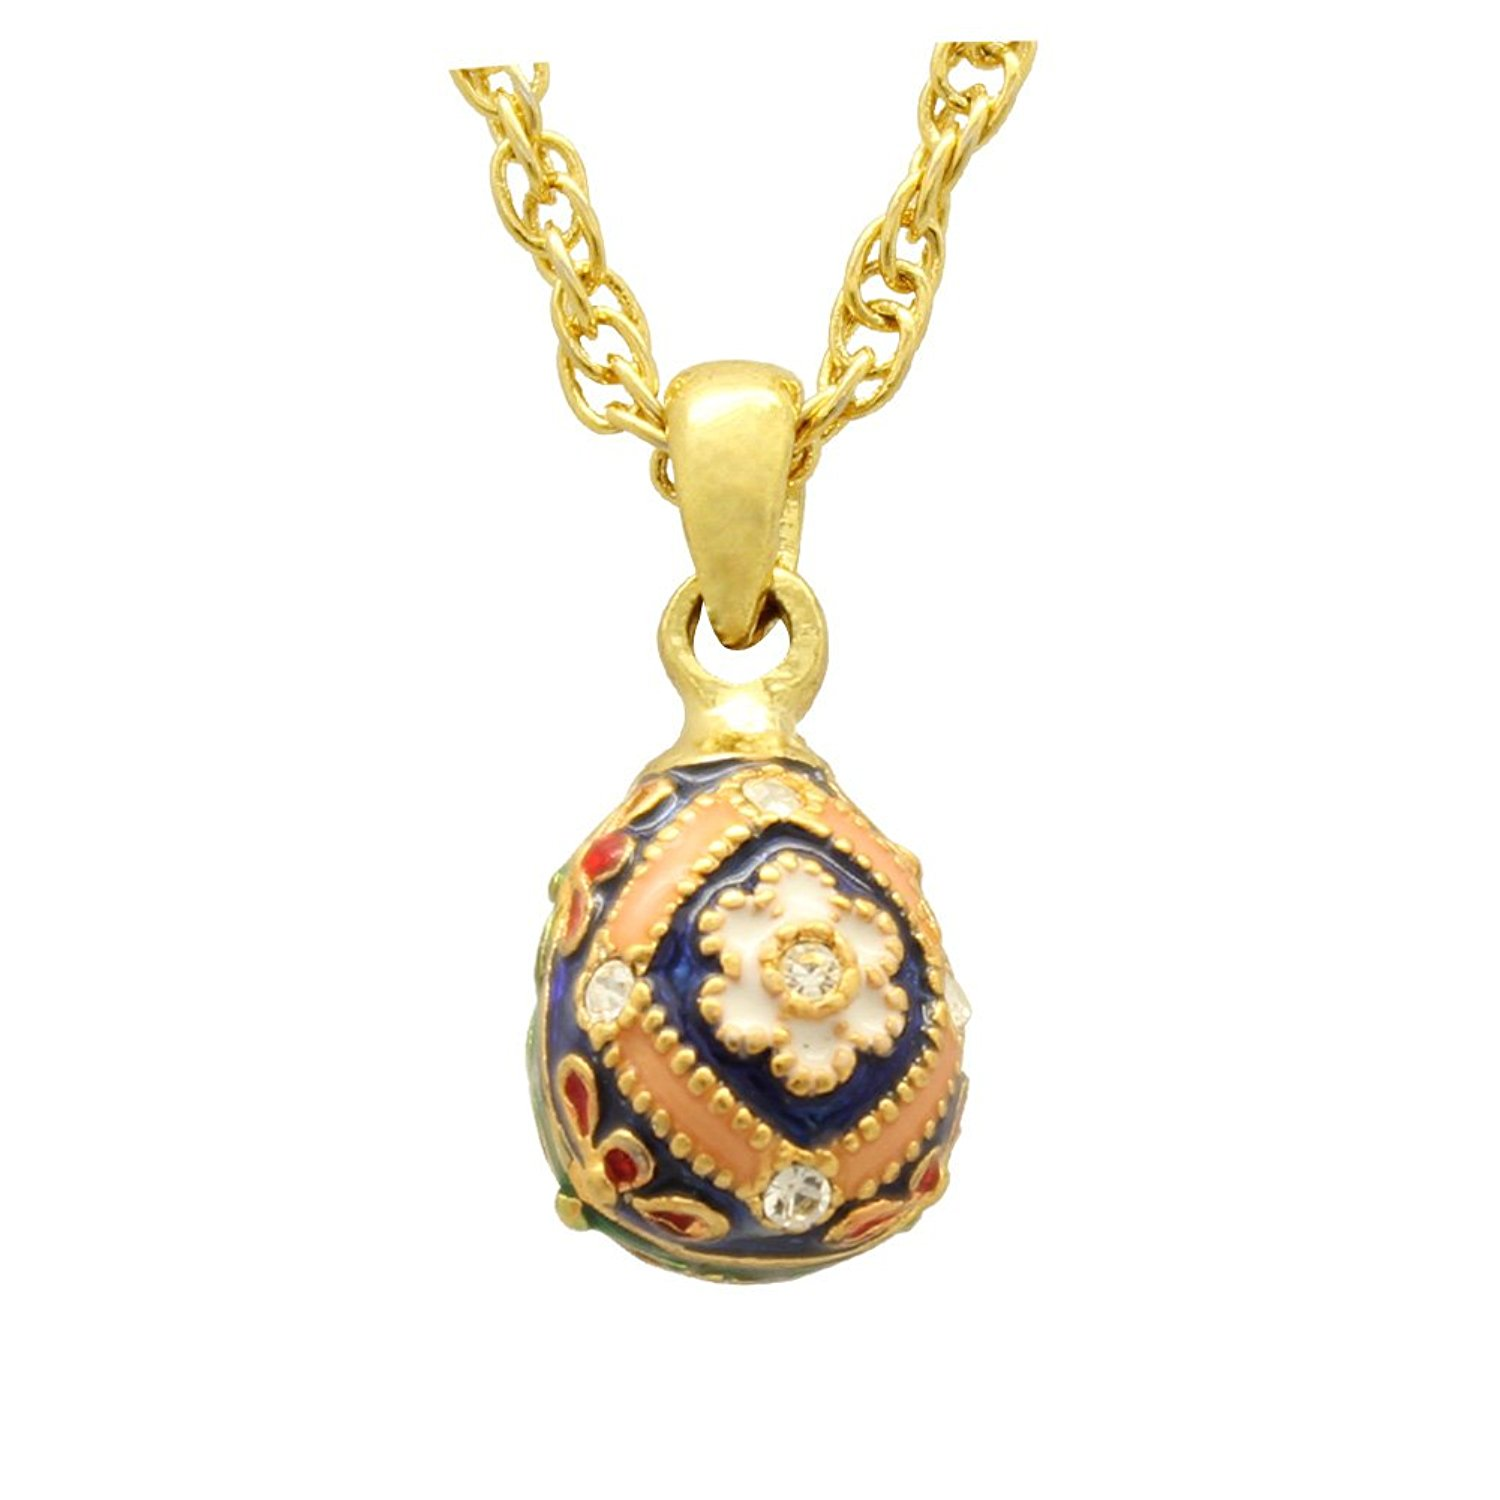 MYD Jewelry Small Crystal Enamel Flower Faberge Egg Pendant Necklace